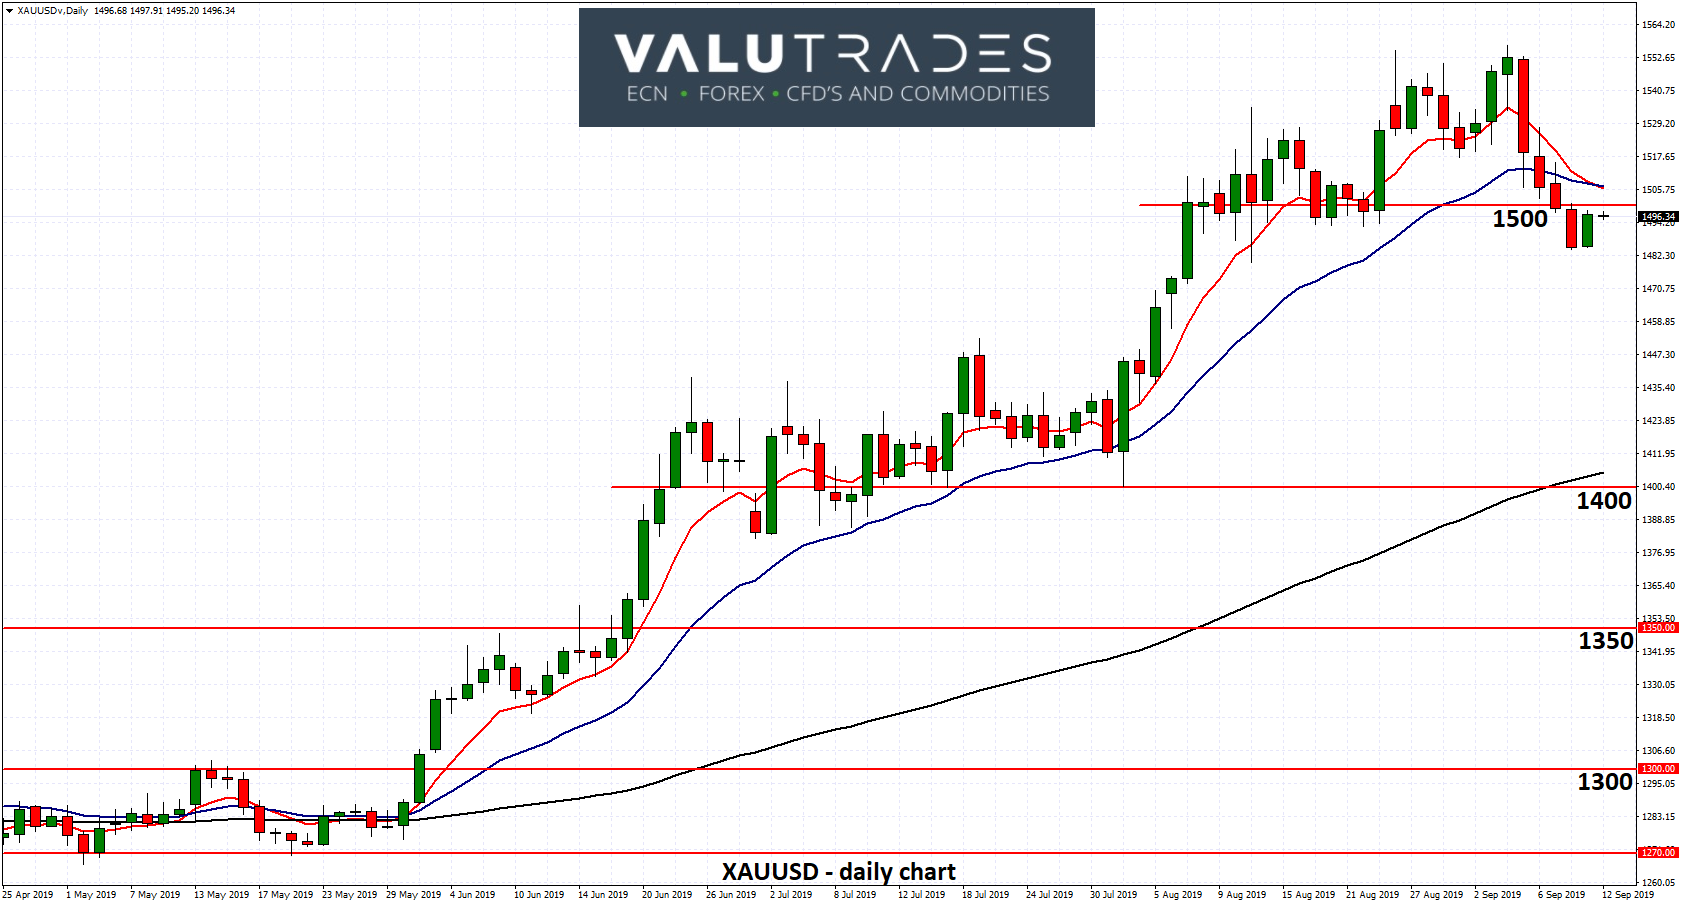 XAUUSD - Retreats Back under $1500 as Focus Turns to Fed